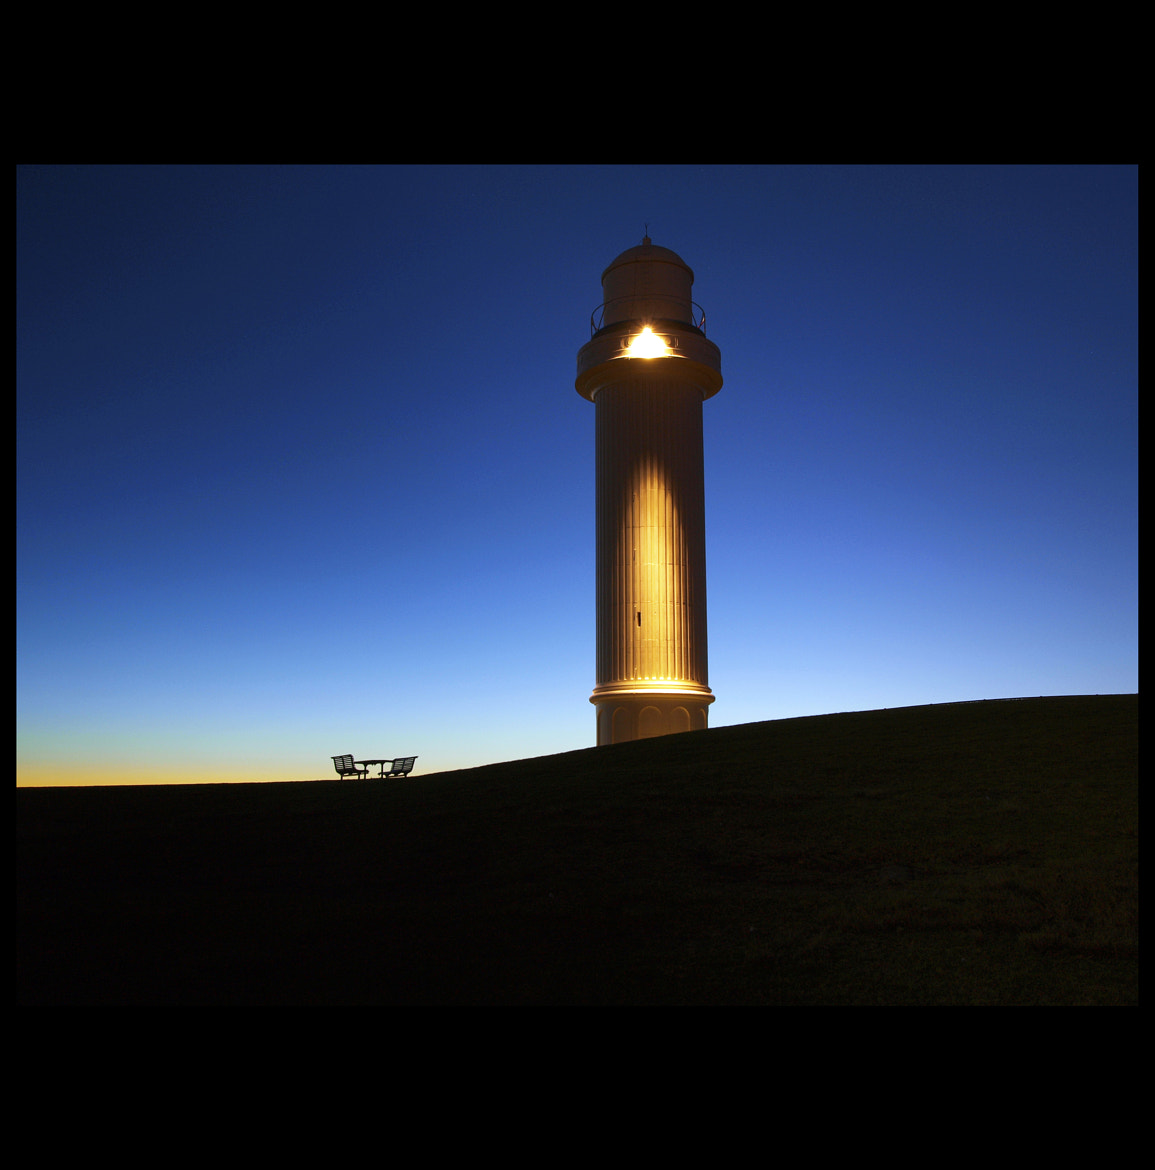 Photograph Wollongong Lighthouse by Anthony Ginman on 500px